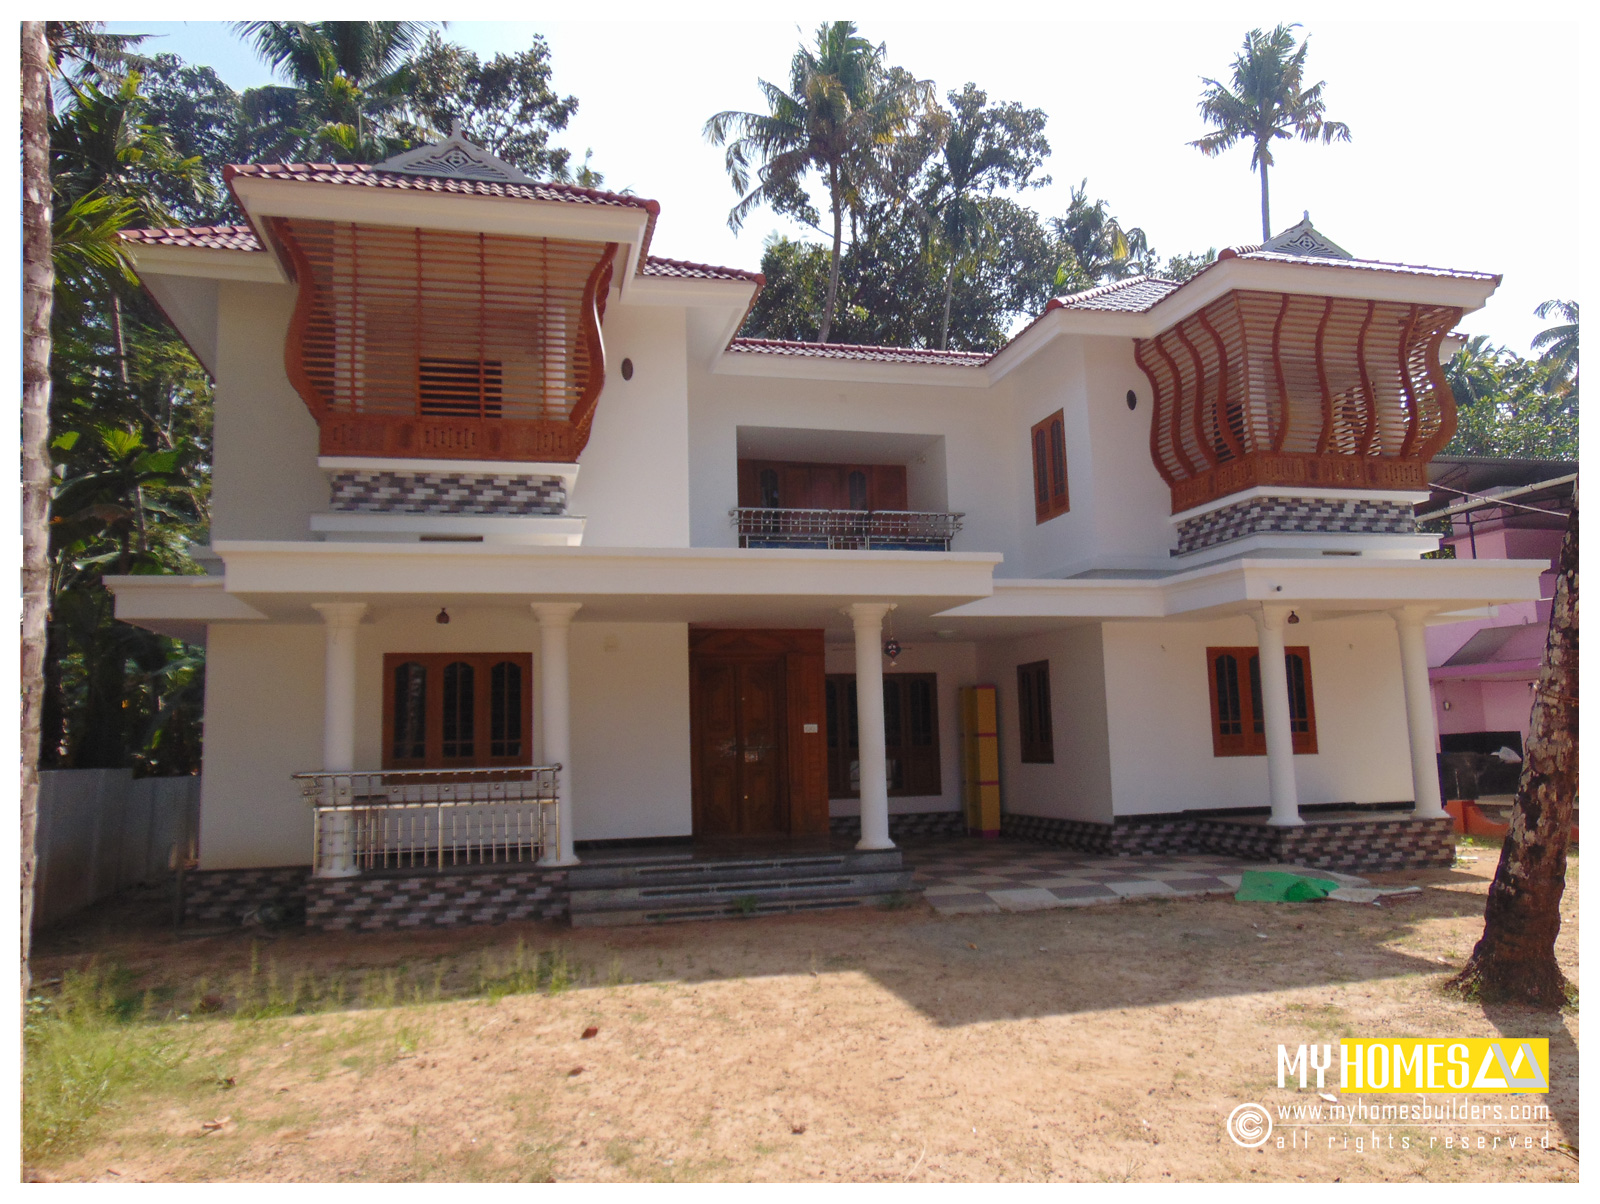 latest low cost prize house plans and home design kerala on blue design, business design, elements of design, ninja design, word bullet point for design, sword bullet point design,